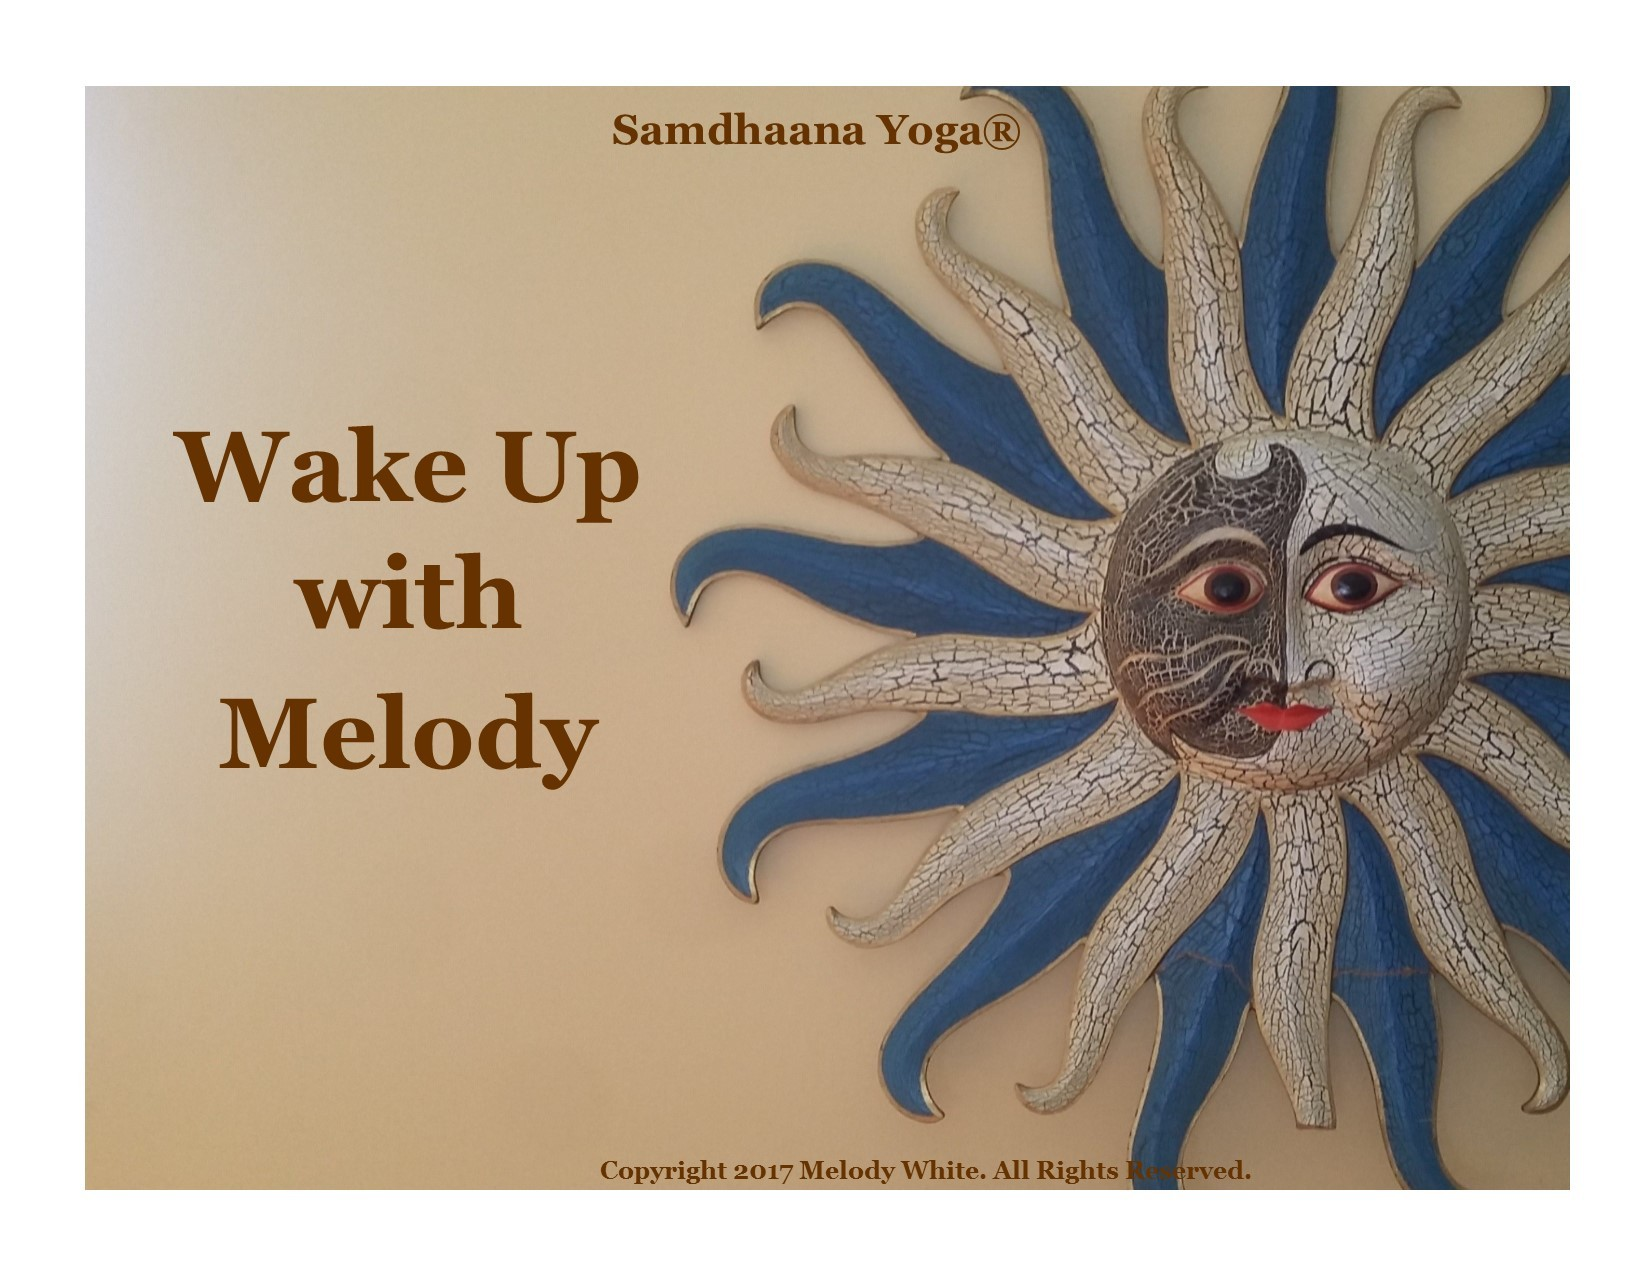 samdhaana wake up with Melody